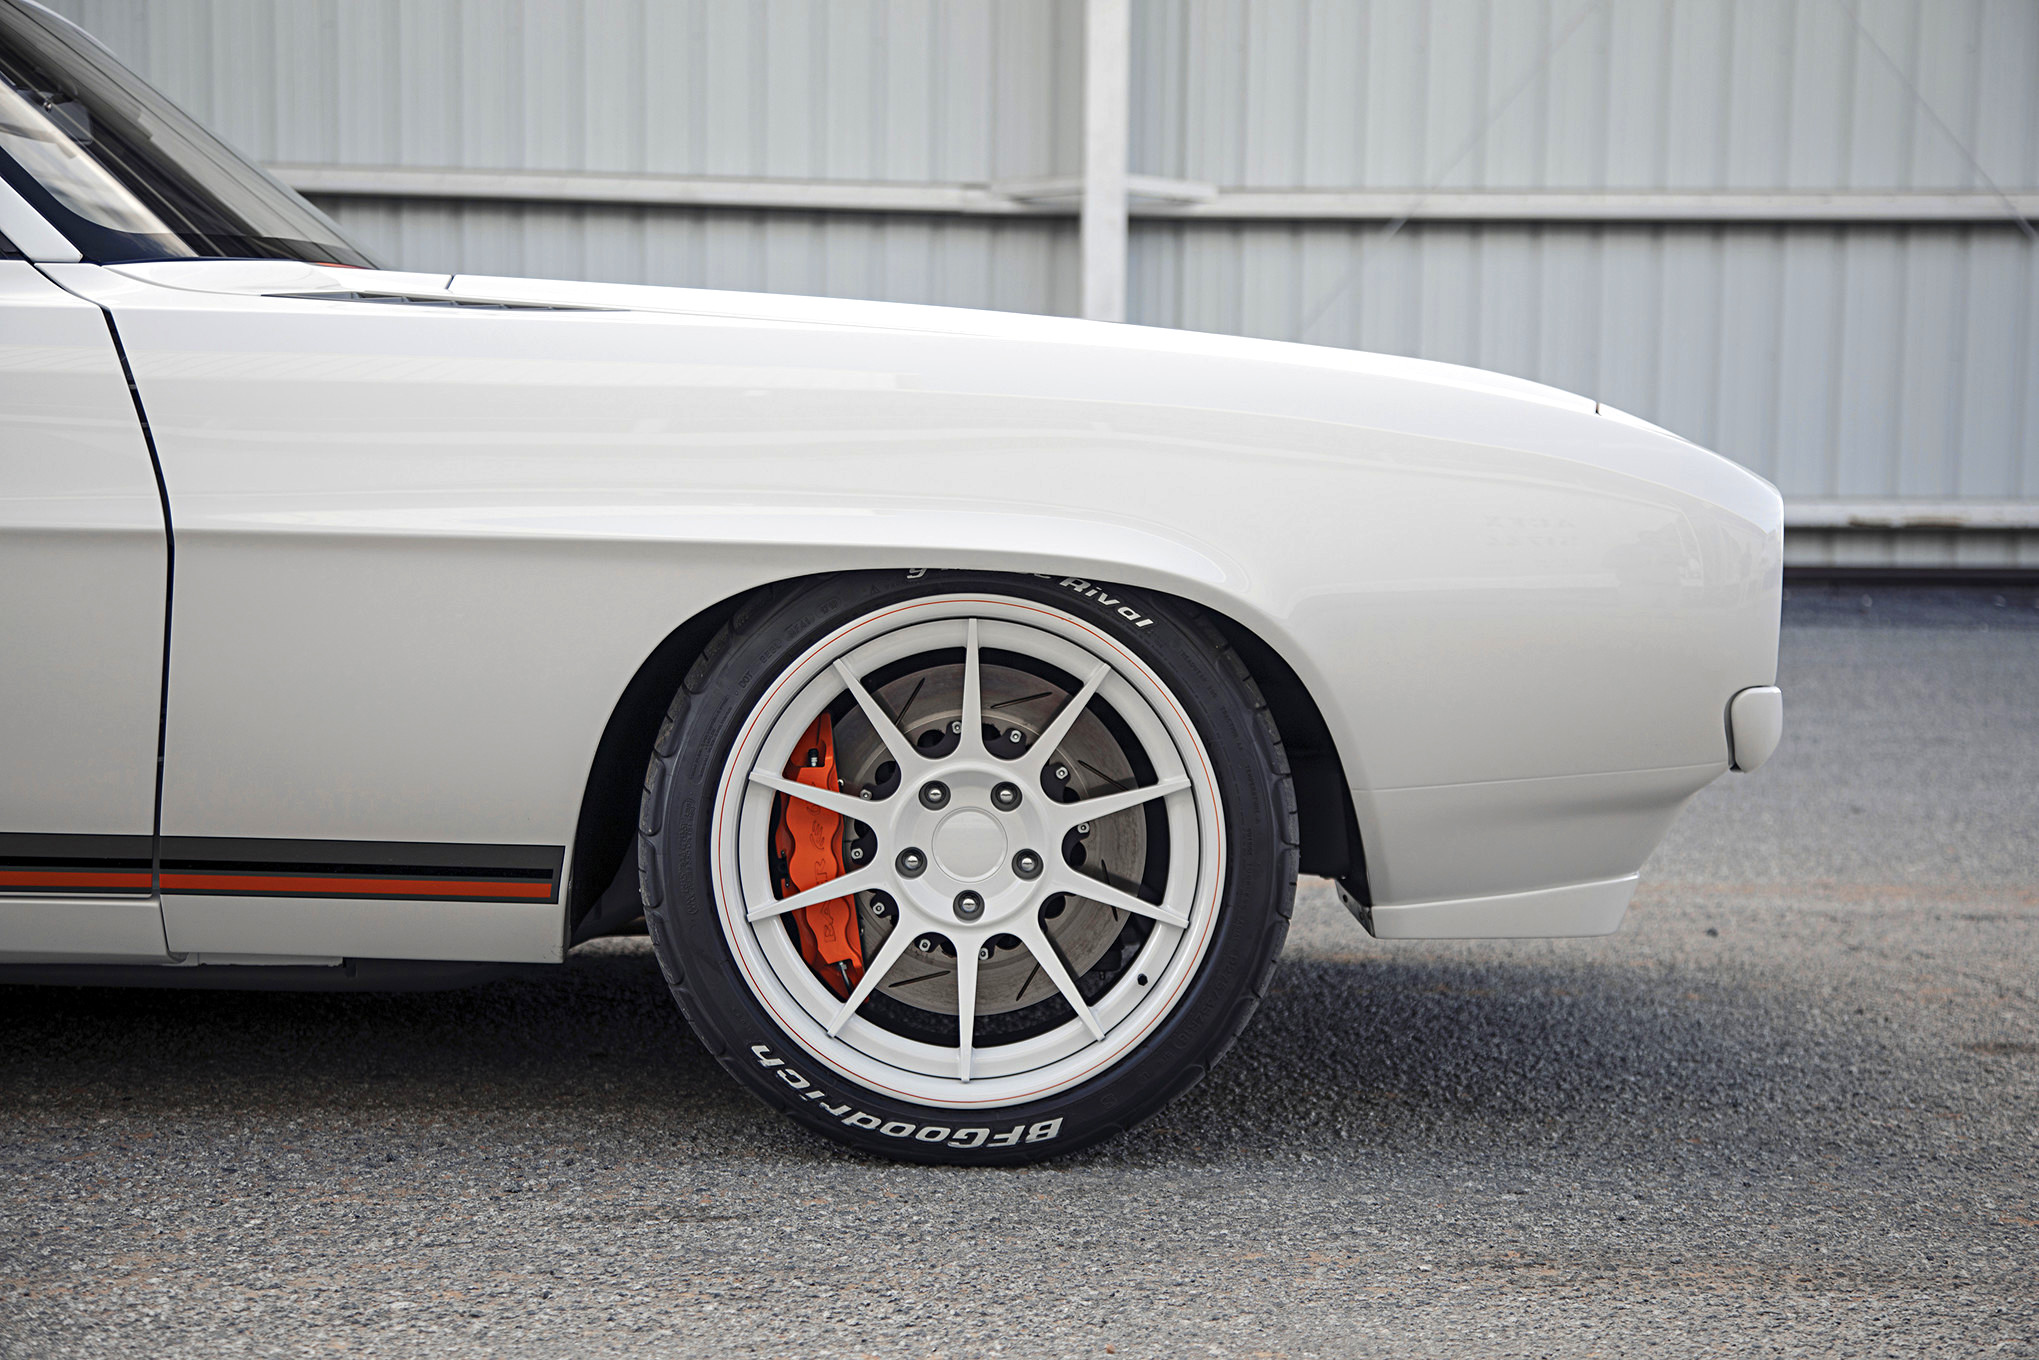 Detroit Speed's latest creation could be the nicest '69